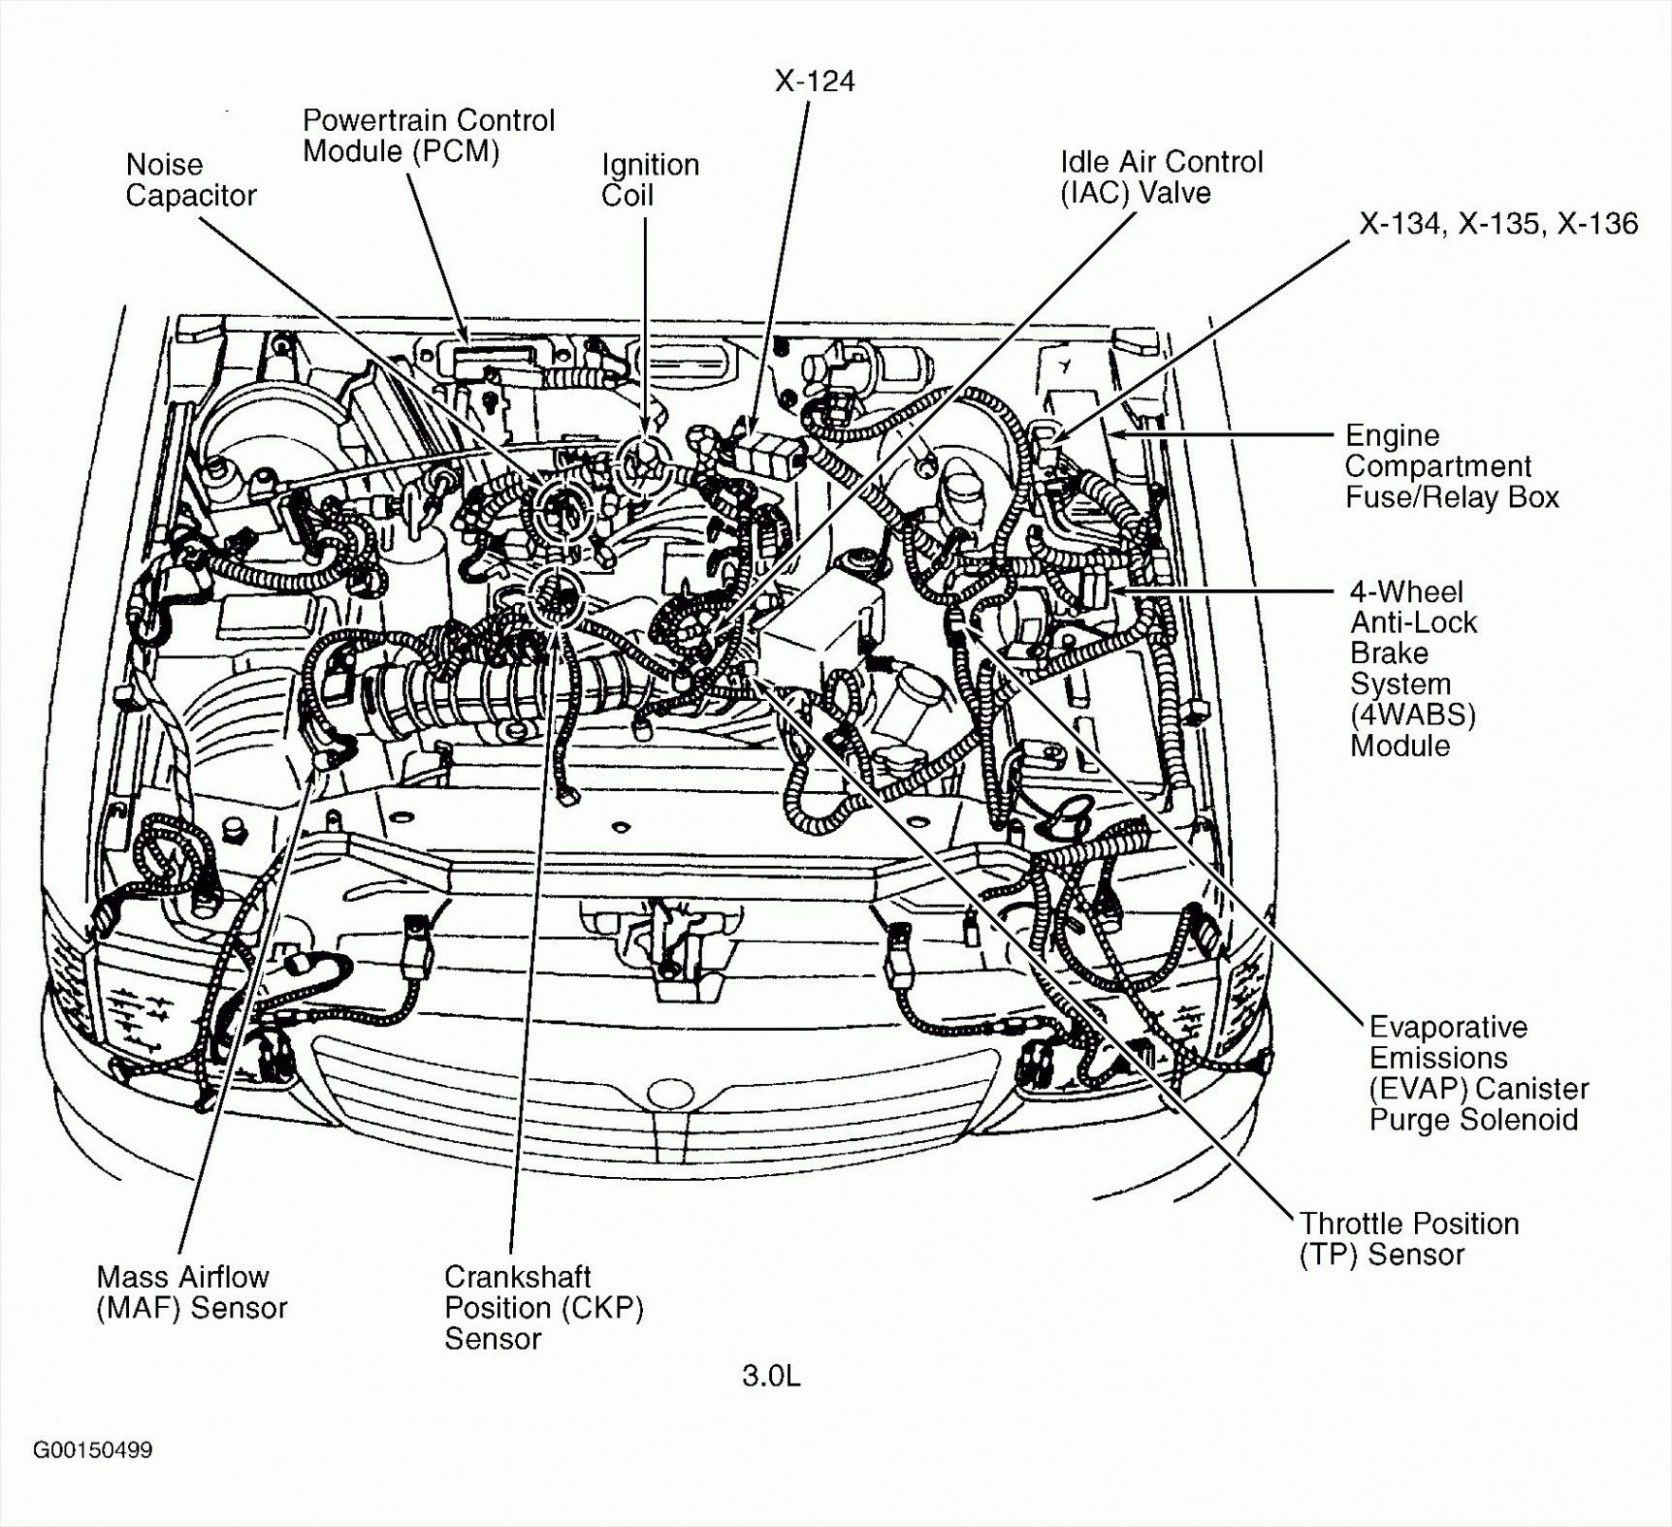 Subaru Engine Layout Diagram Di 2020 Taurus Ford Diagram